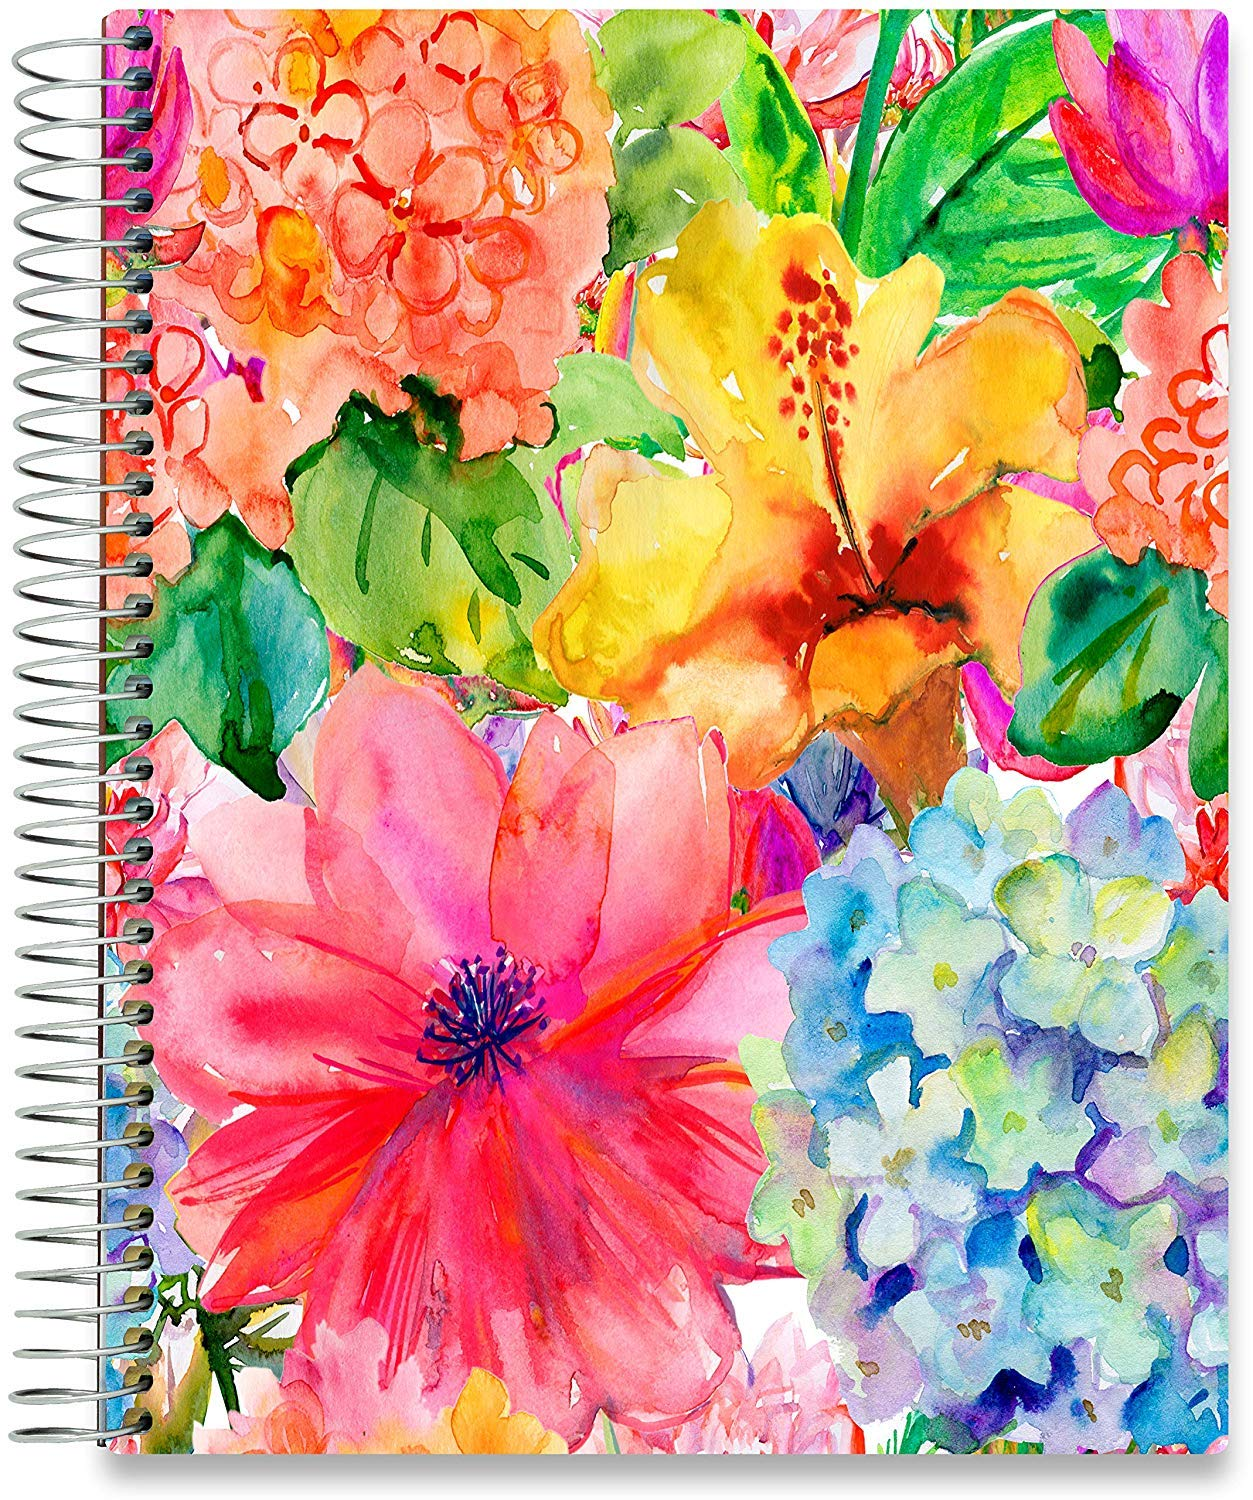 Tools4Wisdom April 2019-2020 Planner - Daily Weekly Monthly Academic Planner Calendar Year - 8.5'' x 11'' Hardcover